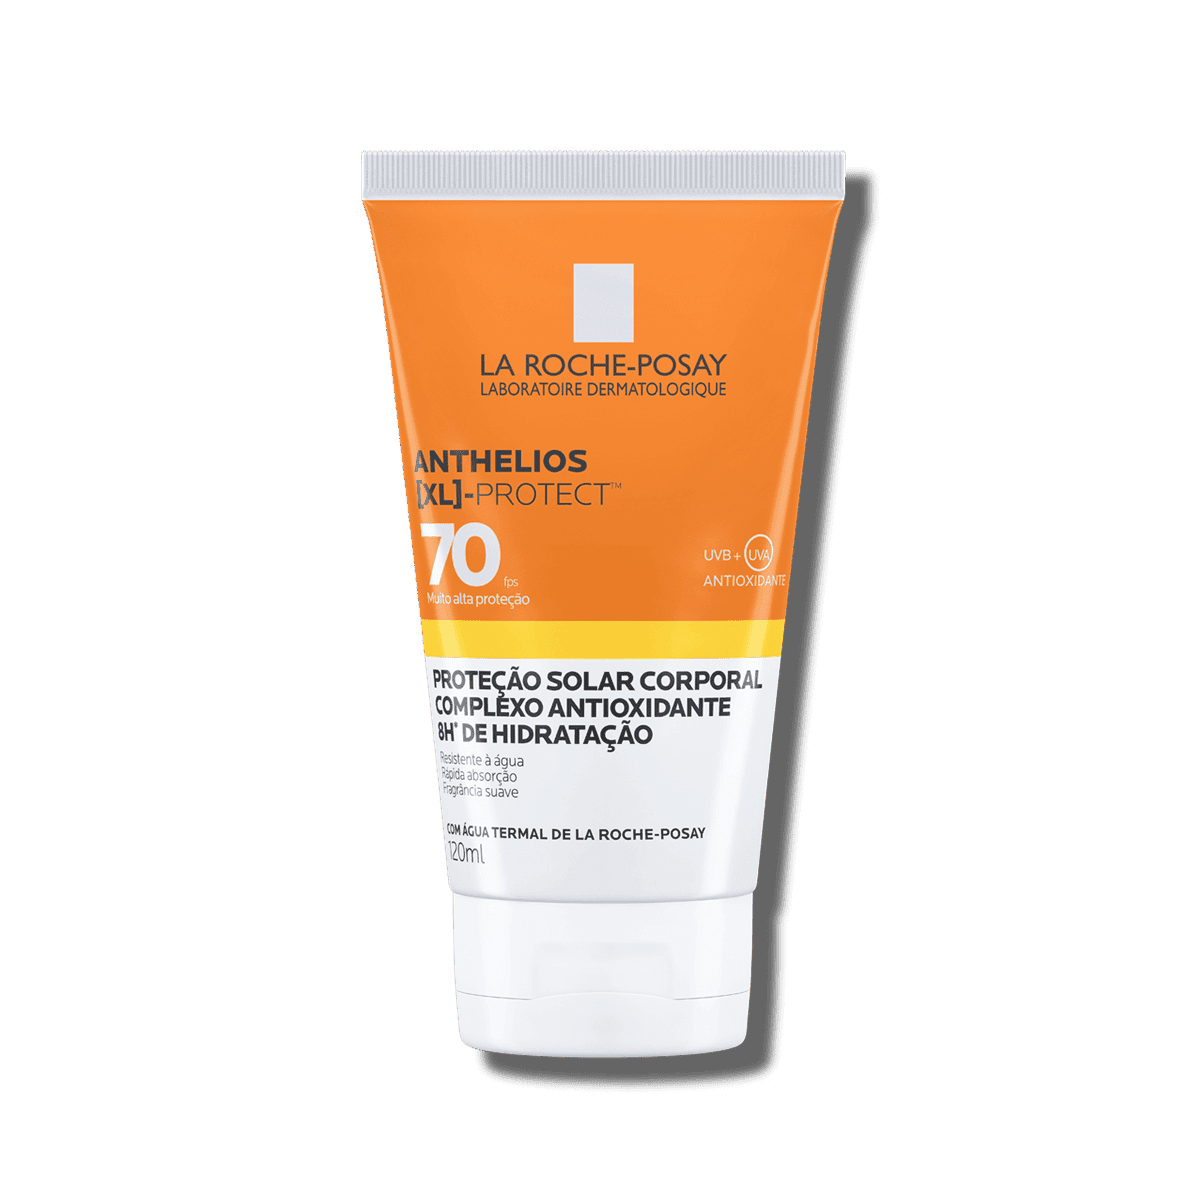 Anthelios Protect Corpo FPS 70 La Roche Posay